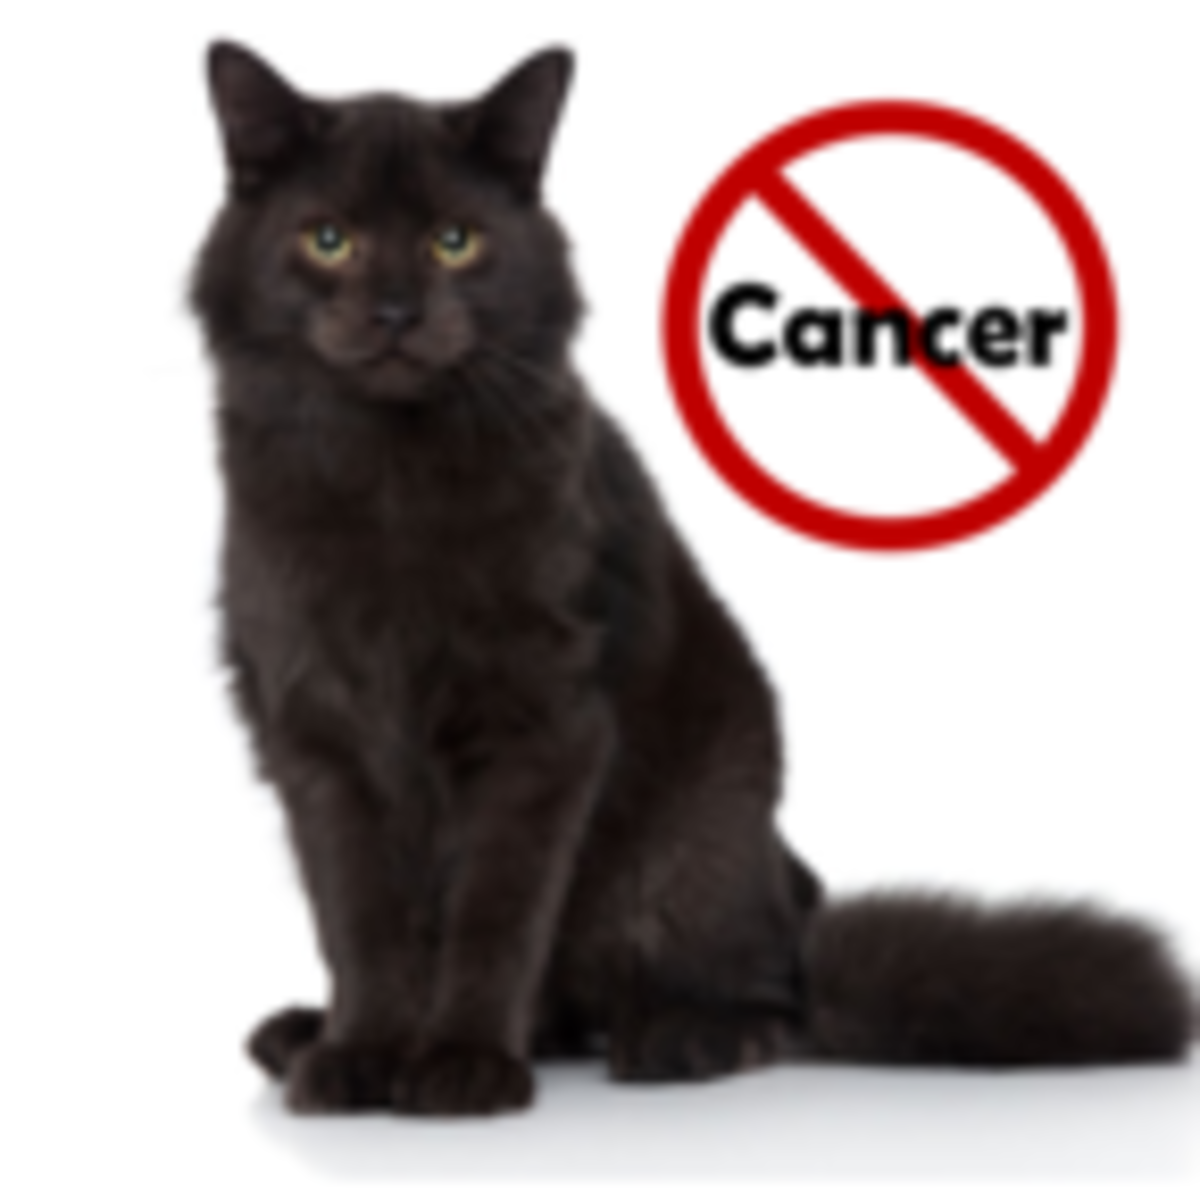 The Strange Link Between Pet Ownership And Cancer In Women Psychology Today